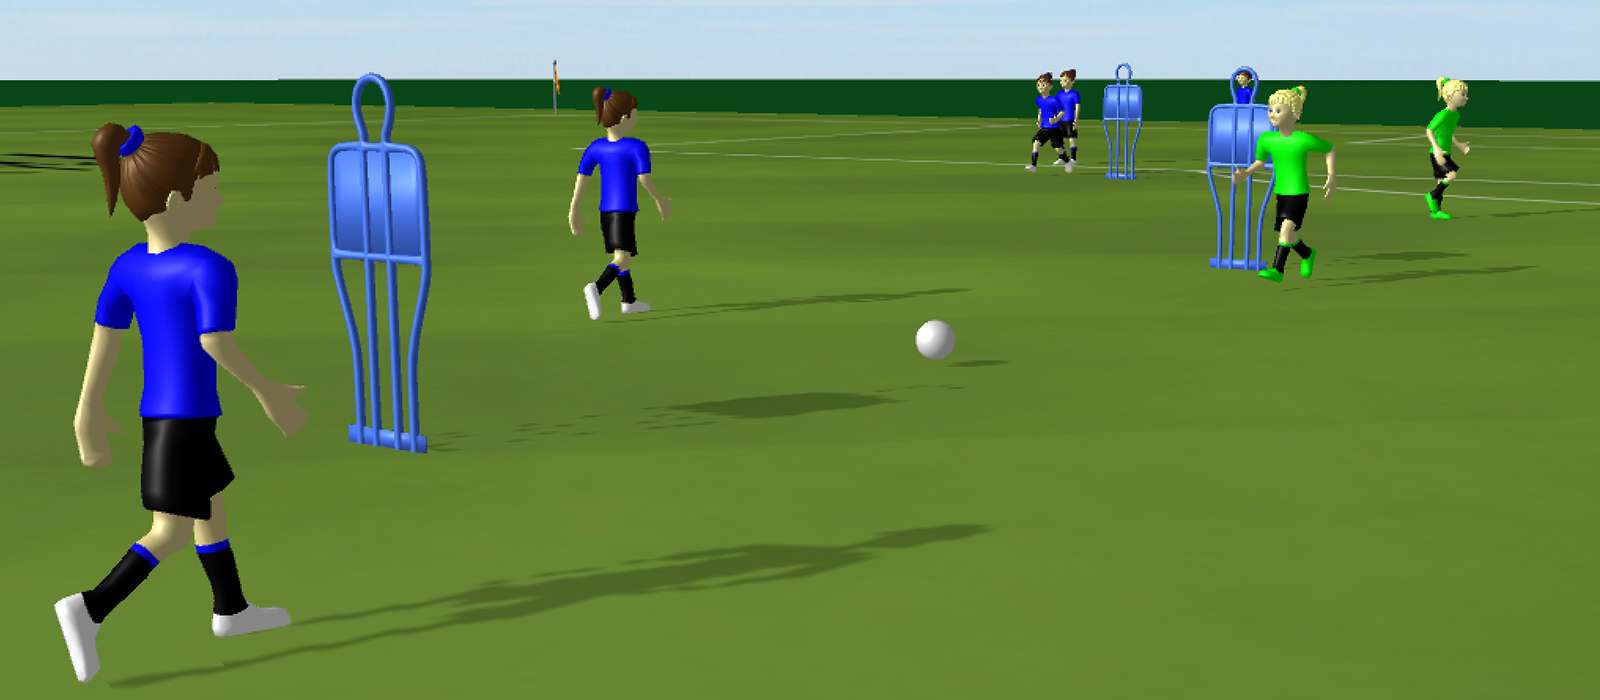 3D Soccer Training